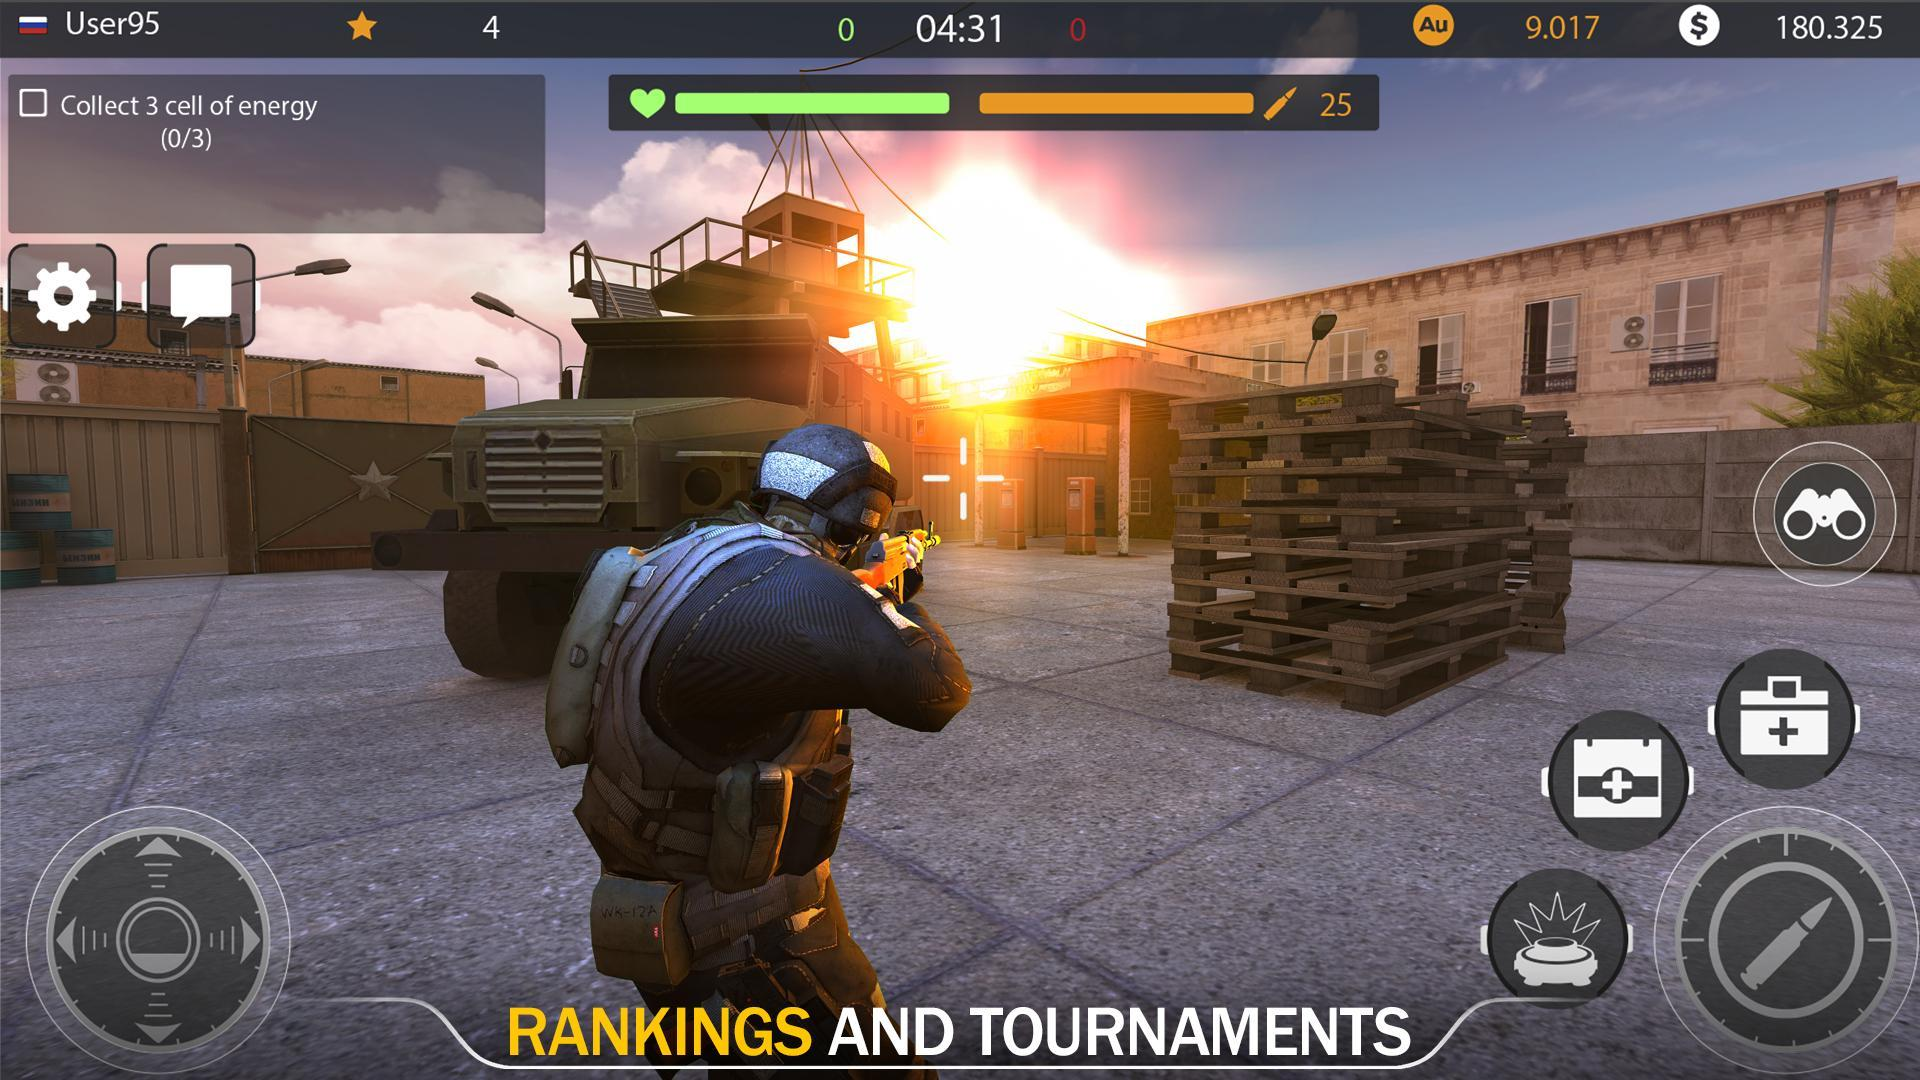 Code of War: Online Shooter Game 3.14.6 Screenshot 10